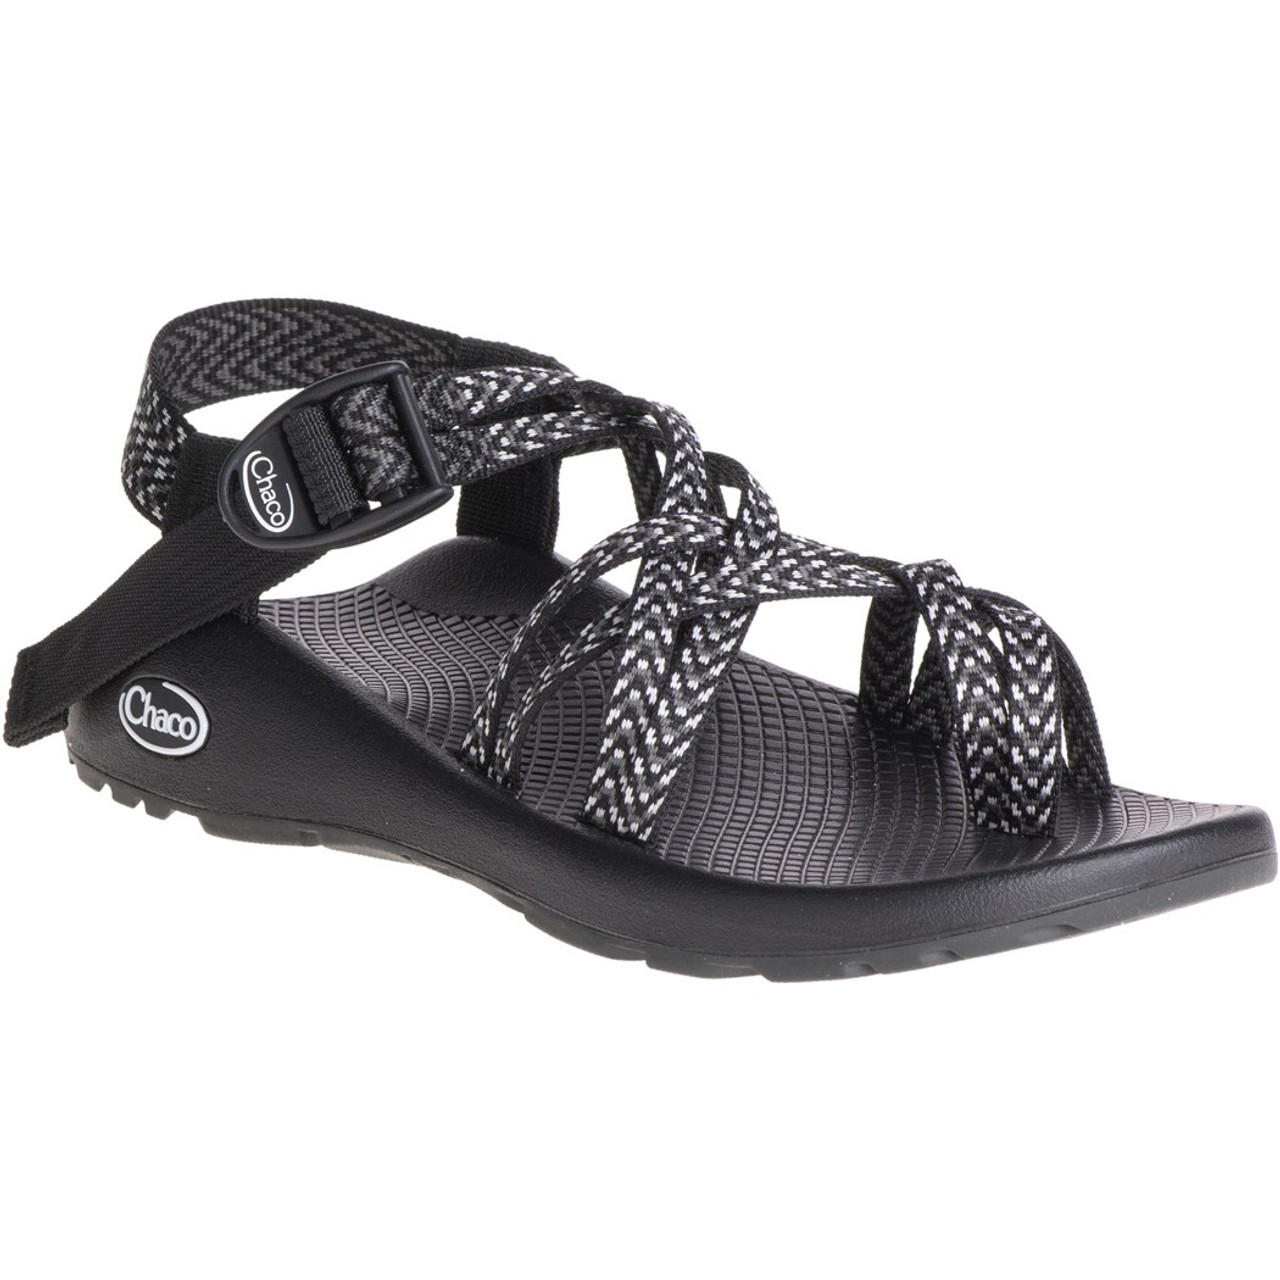 ac839e7750c2 Chacos Women s Sandals - ZX 2 Classic - Boost Black - Surf and Dirt